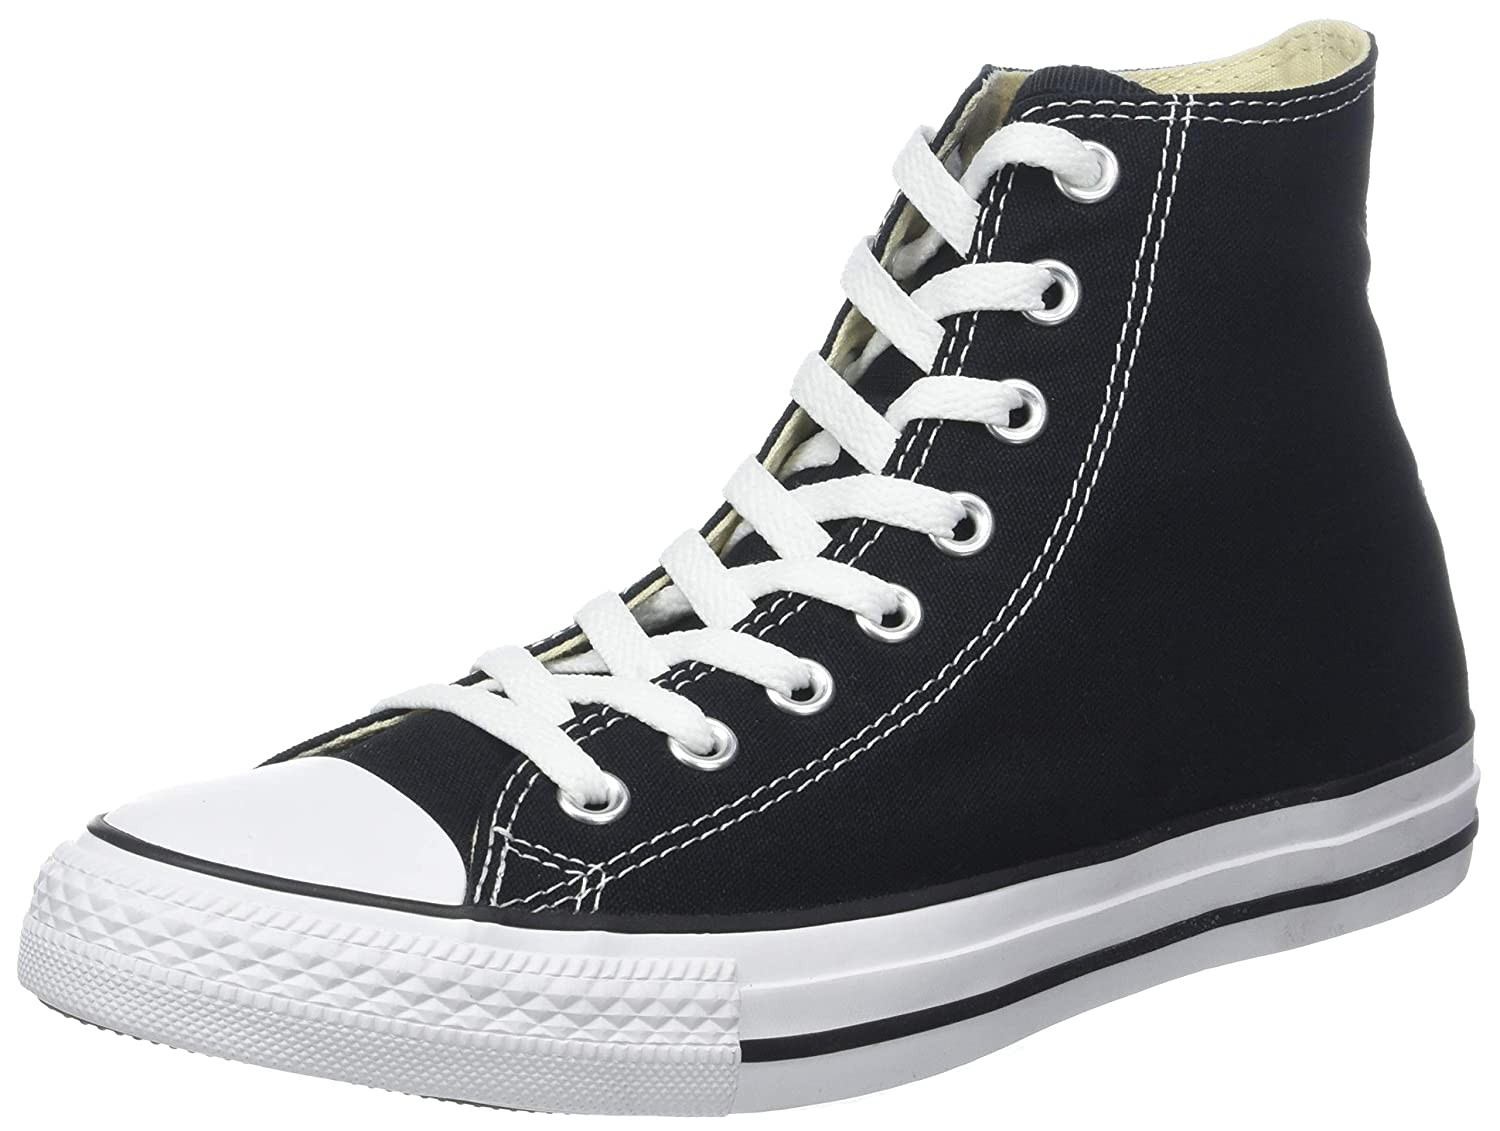 Converse Chuck Low Taylor Etoiles Noir Low Top Mode Sneakers Sneaker Mode Noir 746b98e - shopssong.space